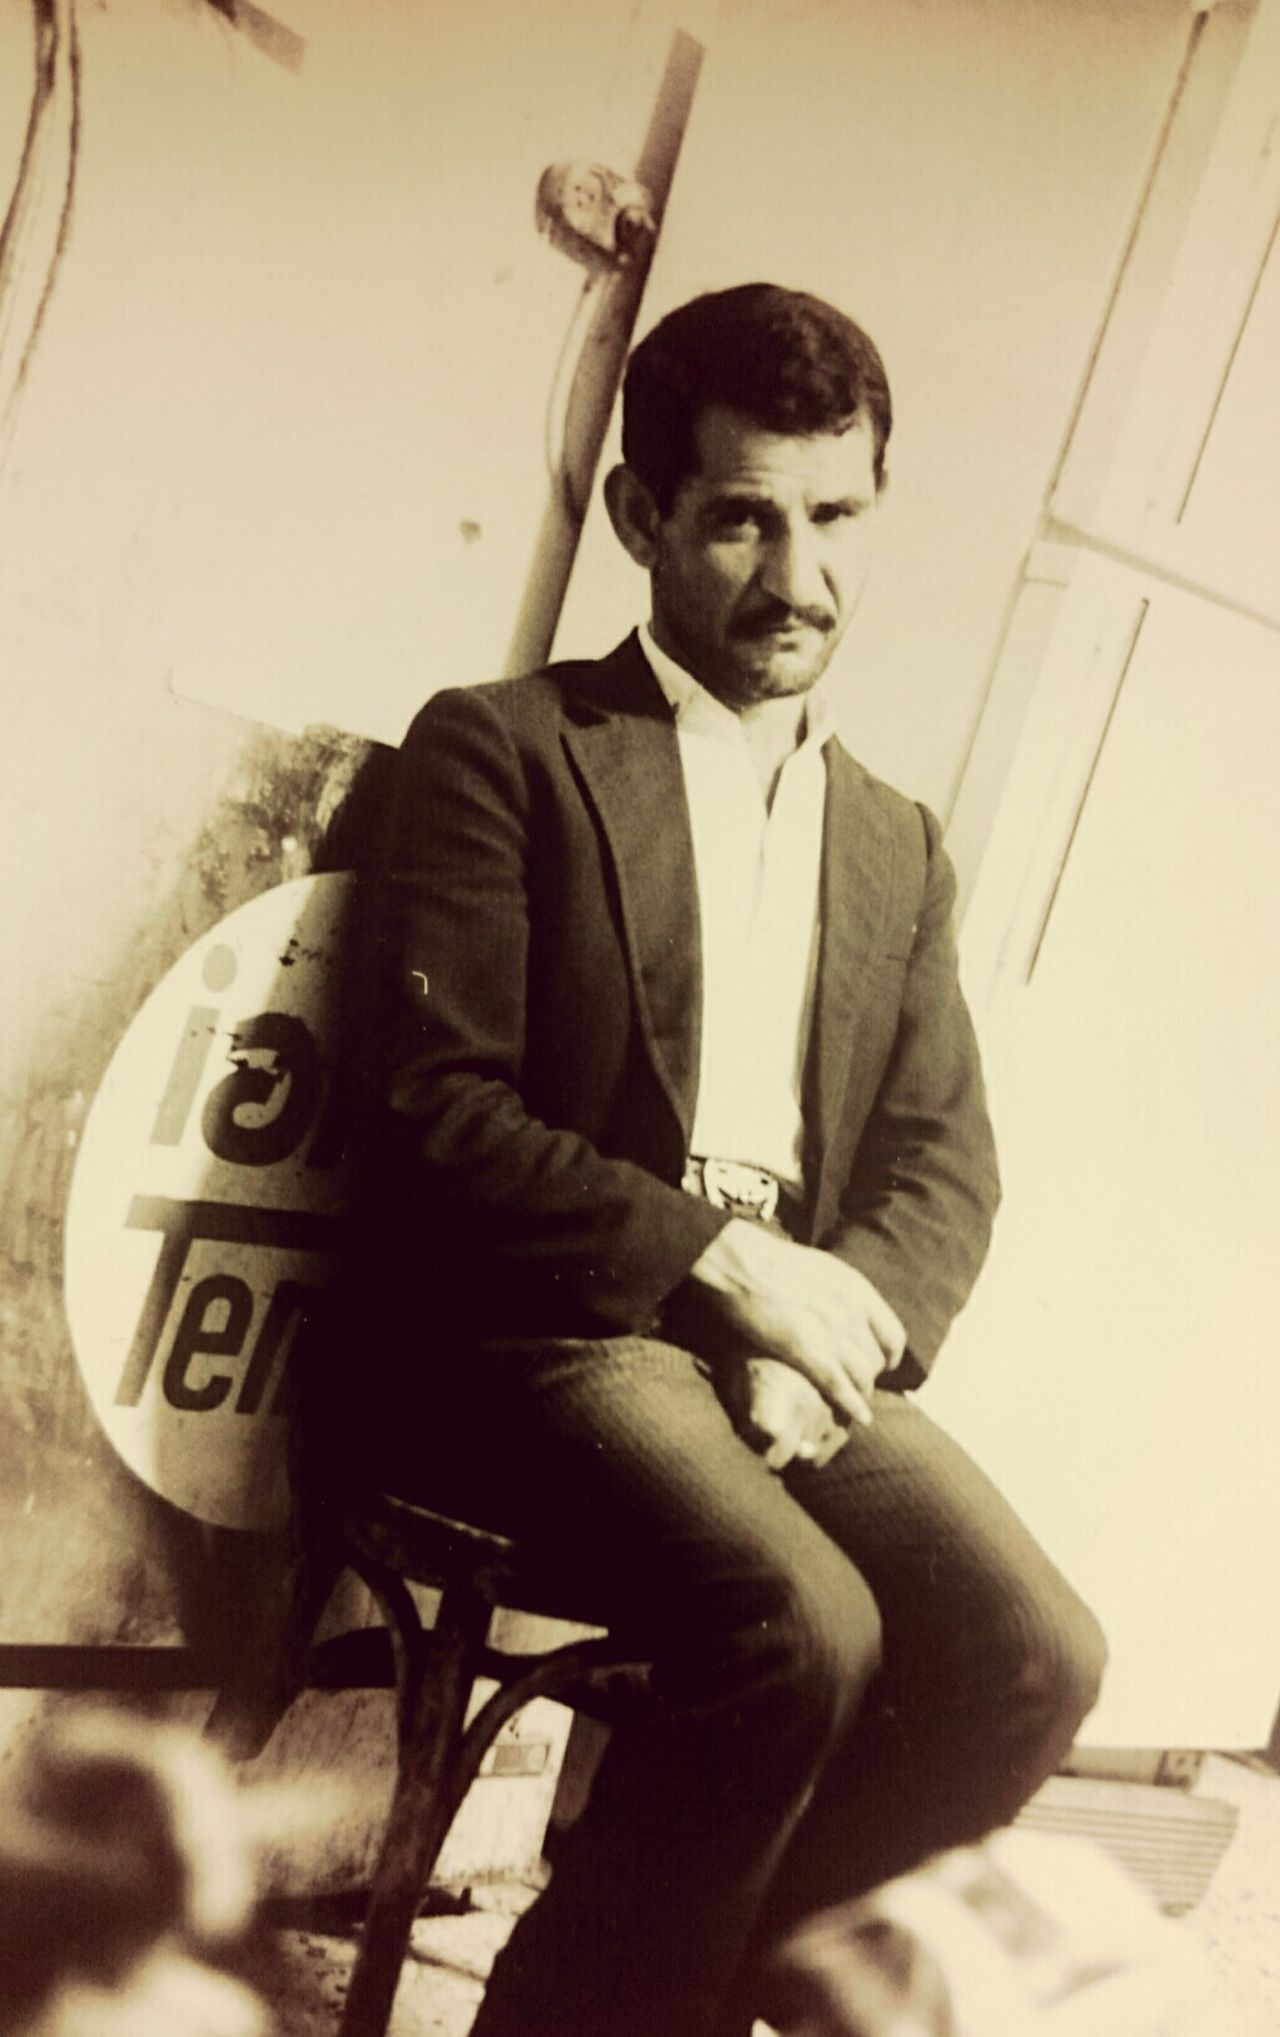 Human Portrait Body Language Desperate Unhappy Sitting Chair Black & White Jerusalem Old Pic  My First Published Subtile Conceptual